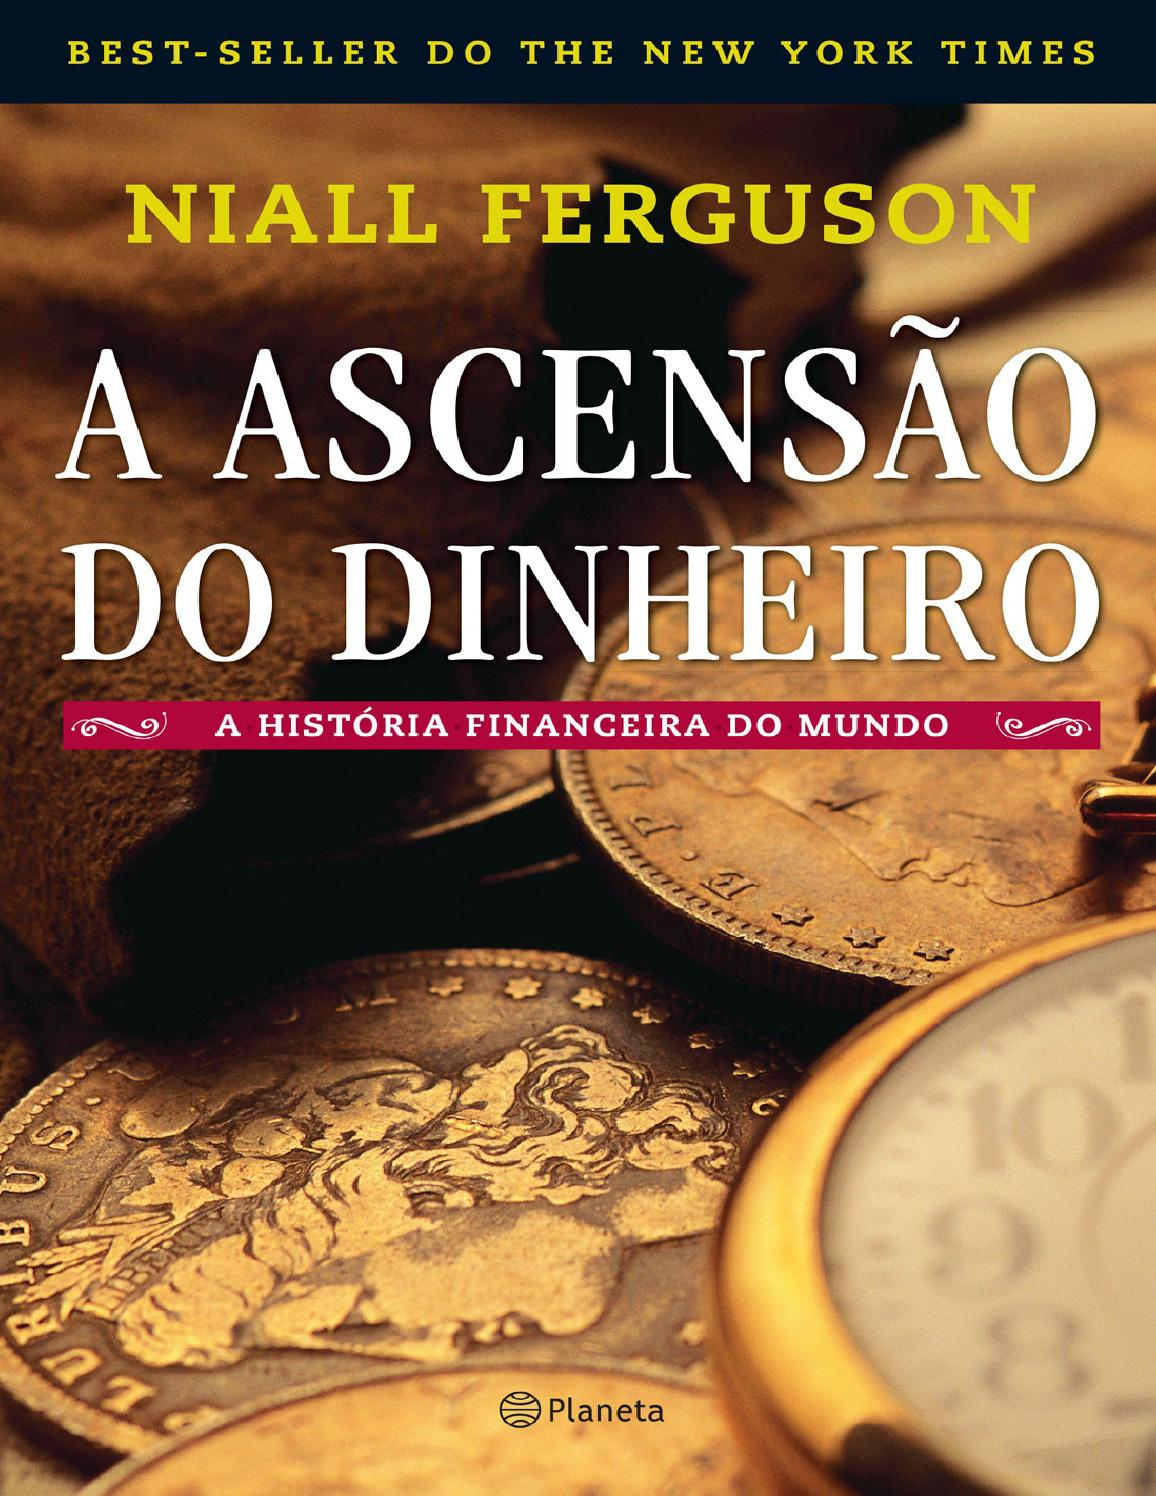 A ascensao do dinheiro niall ferguson by hamilton rodrigues issuu fandeluxe Gallery